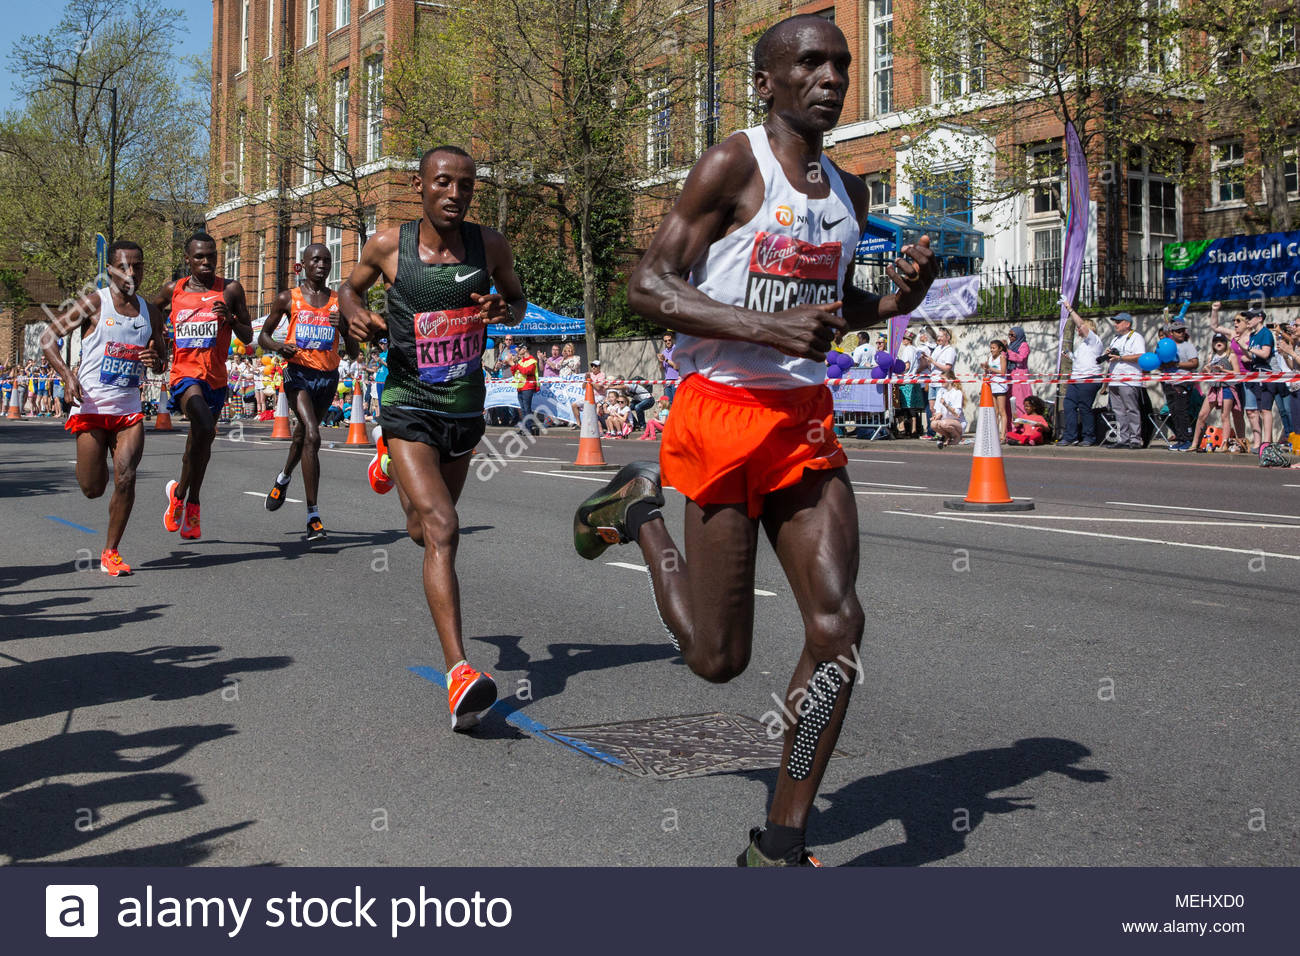 Eliud Kipchoge Stock Photos Eliud Kipchoge Stock Images   Alamy 1300x956